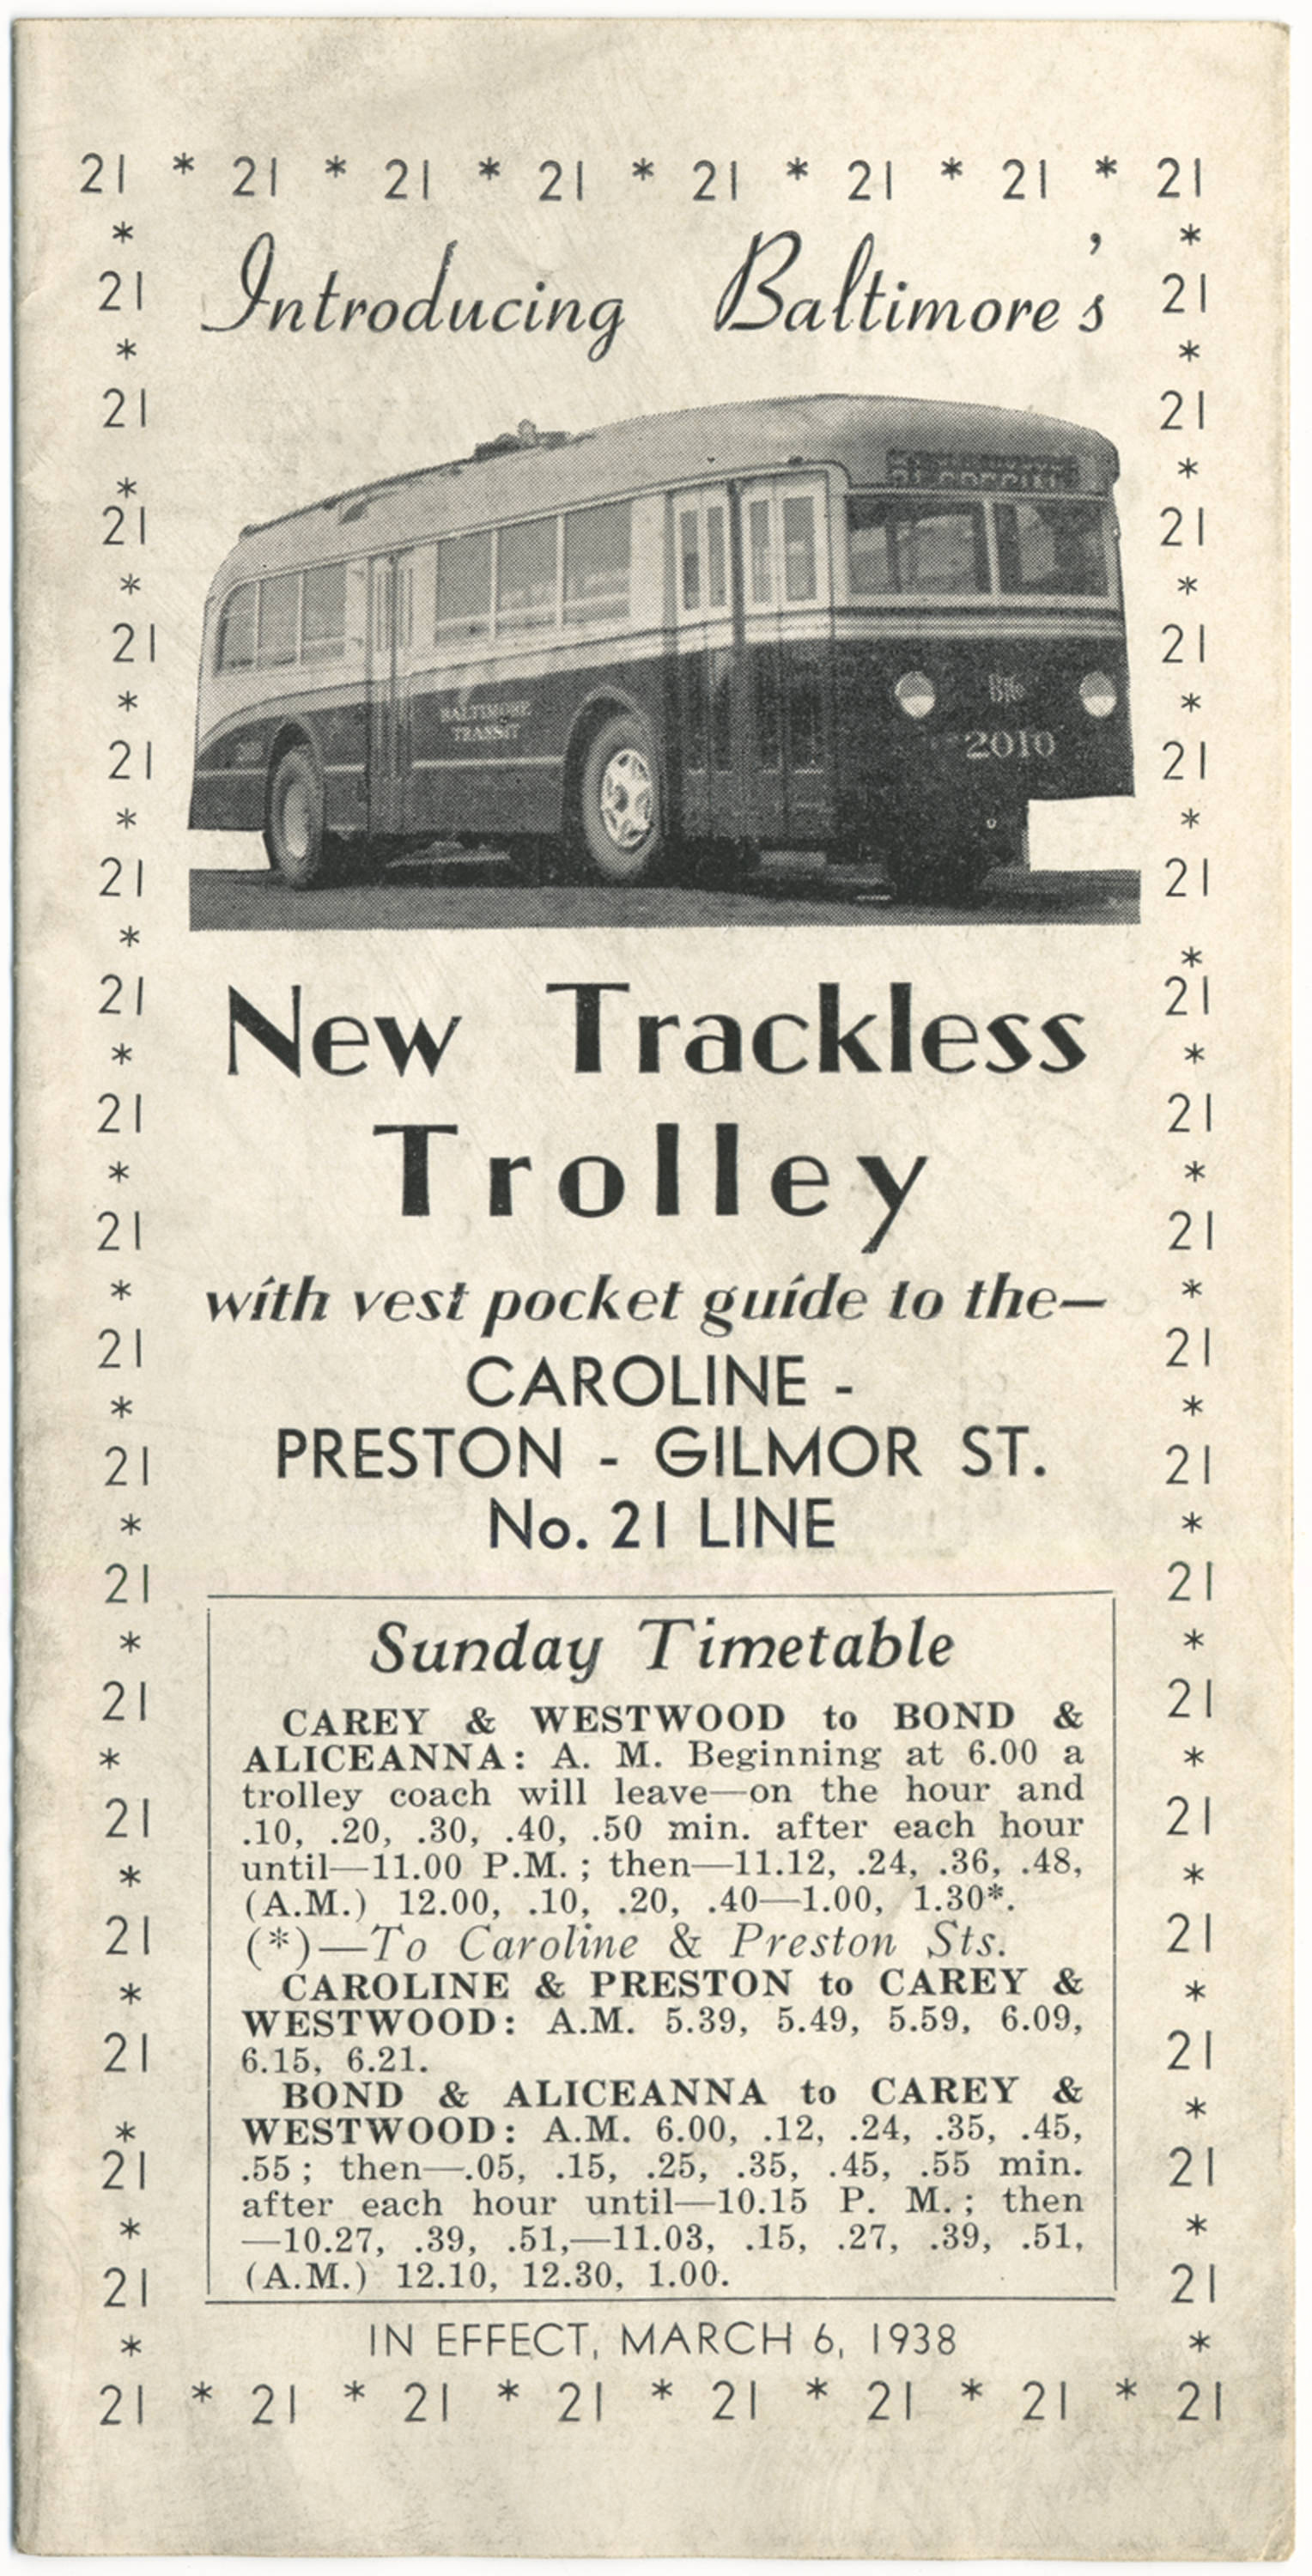 Vest Pocket Guide to Baltimore's New Trackless Trolley